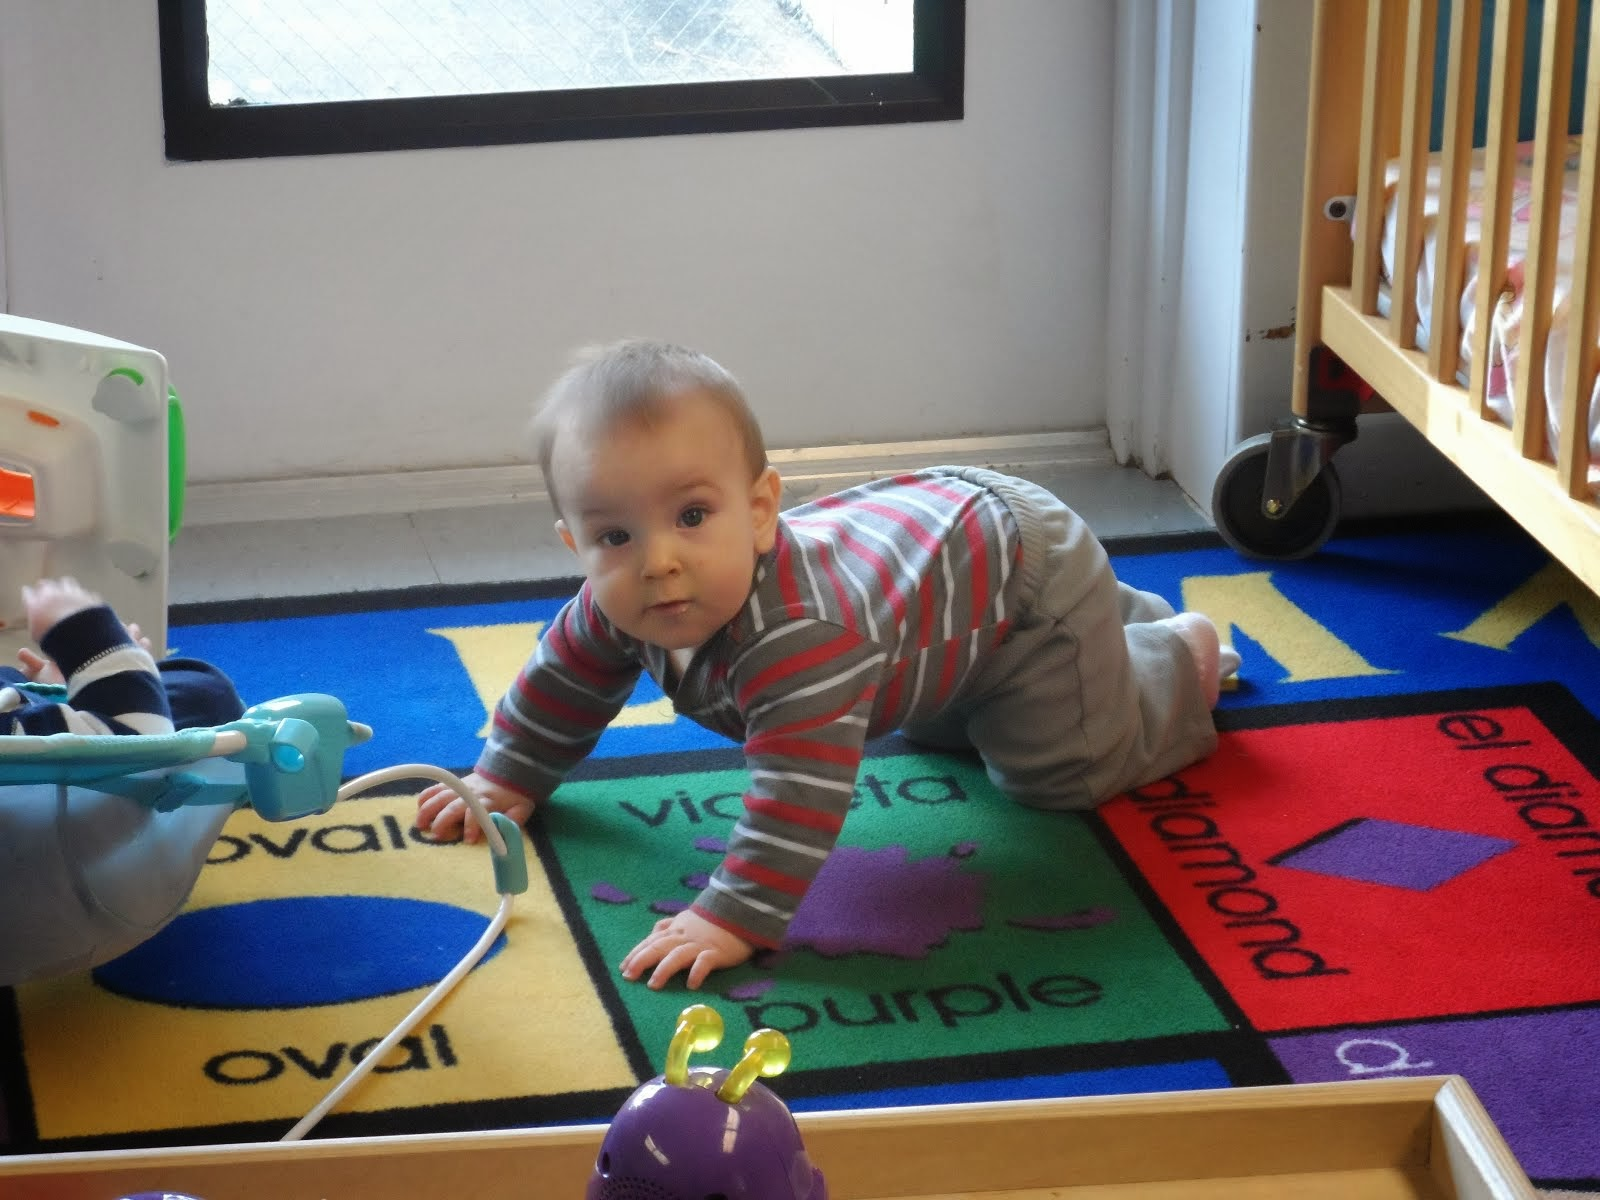 I am learning to crawl !